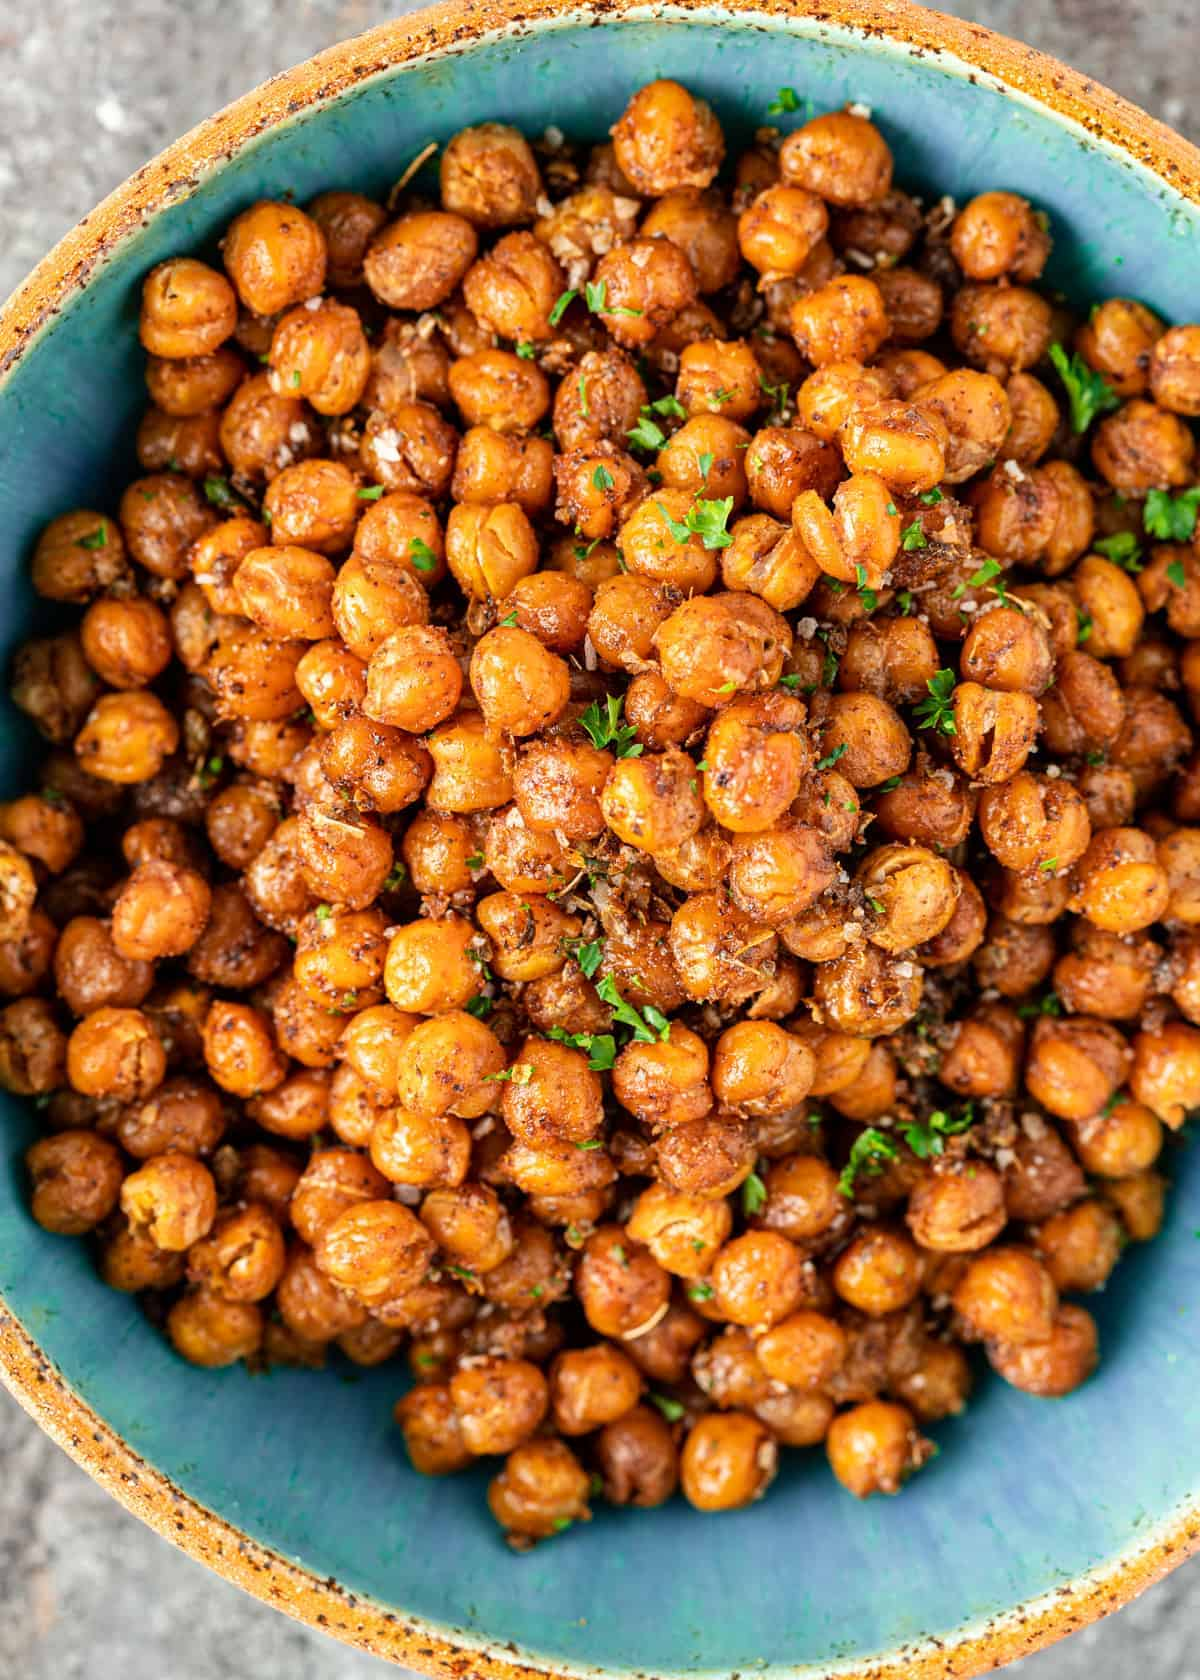 overhead image of turkish sweet roasted chickpeas in a blue bowl.